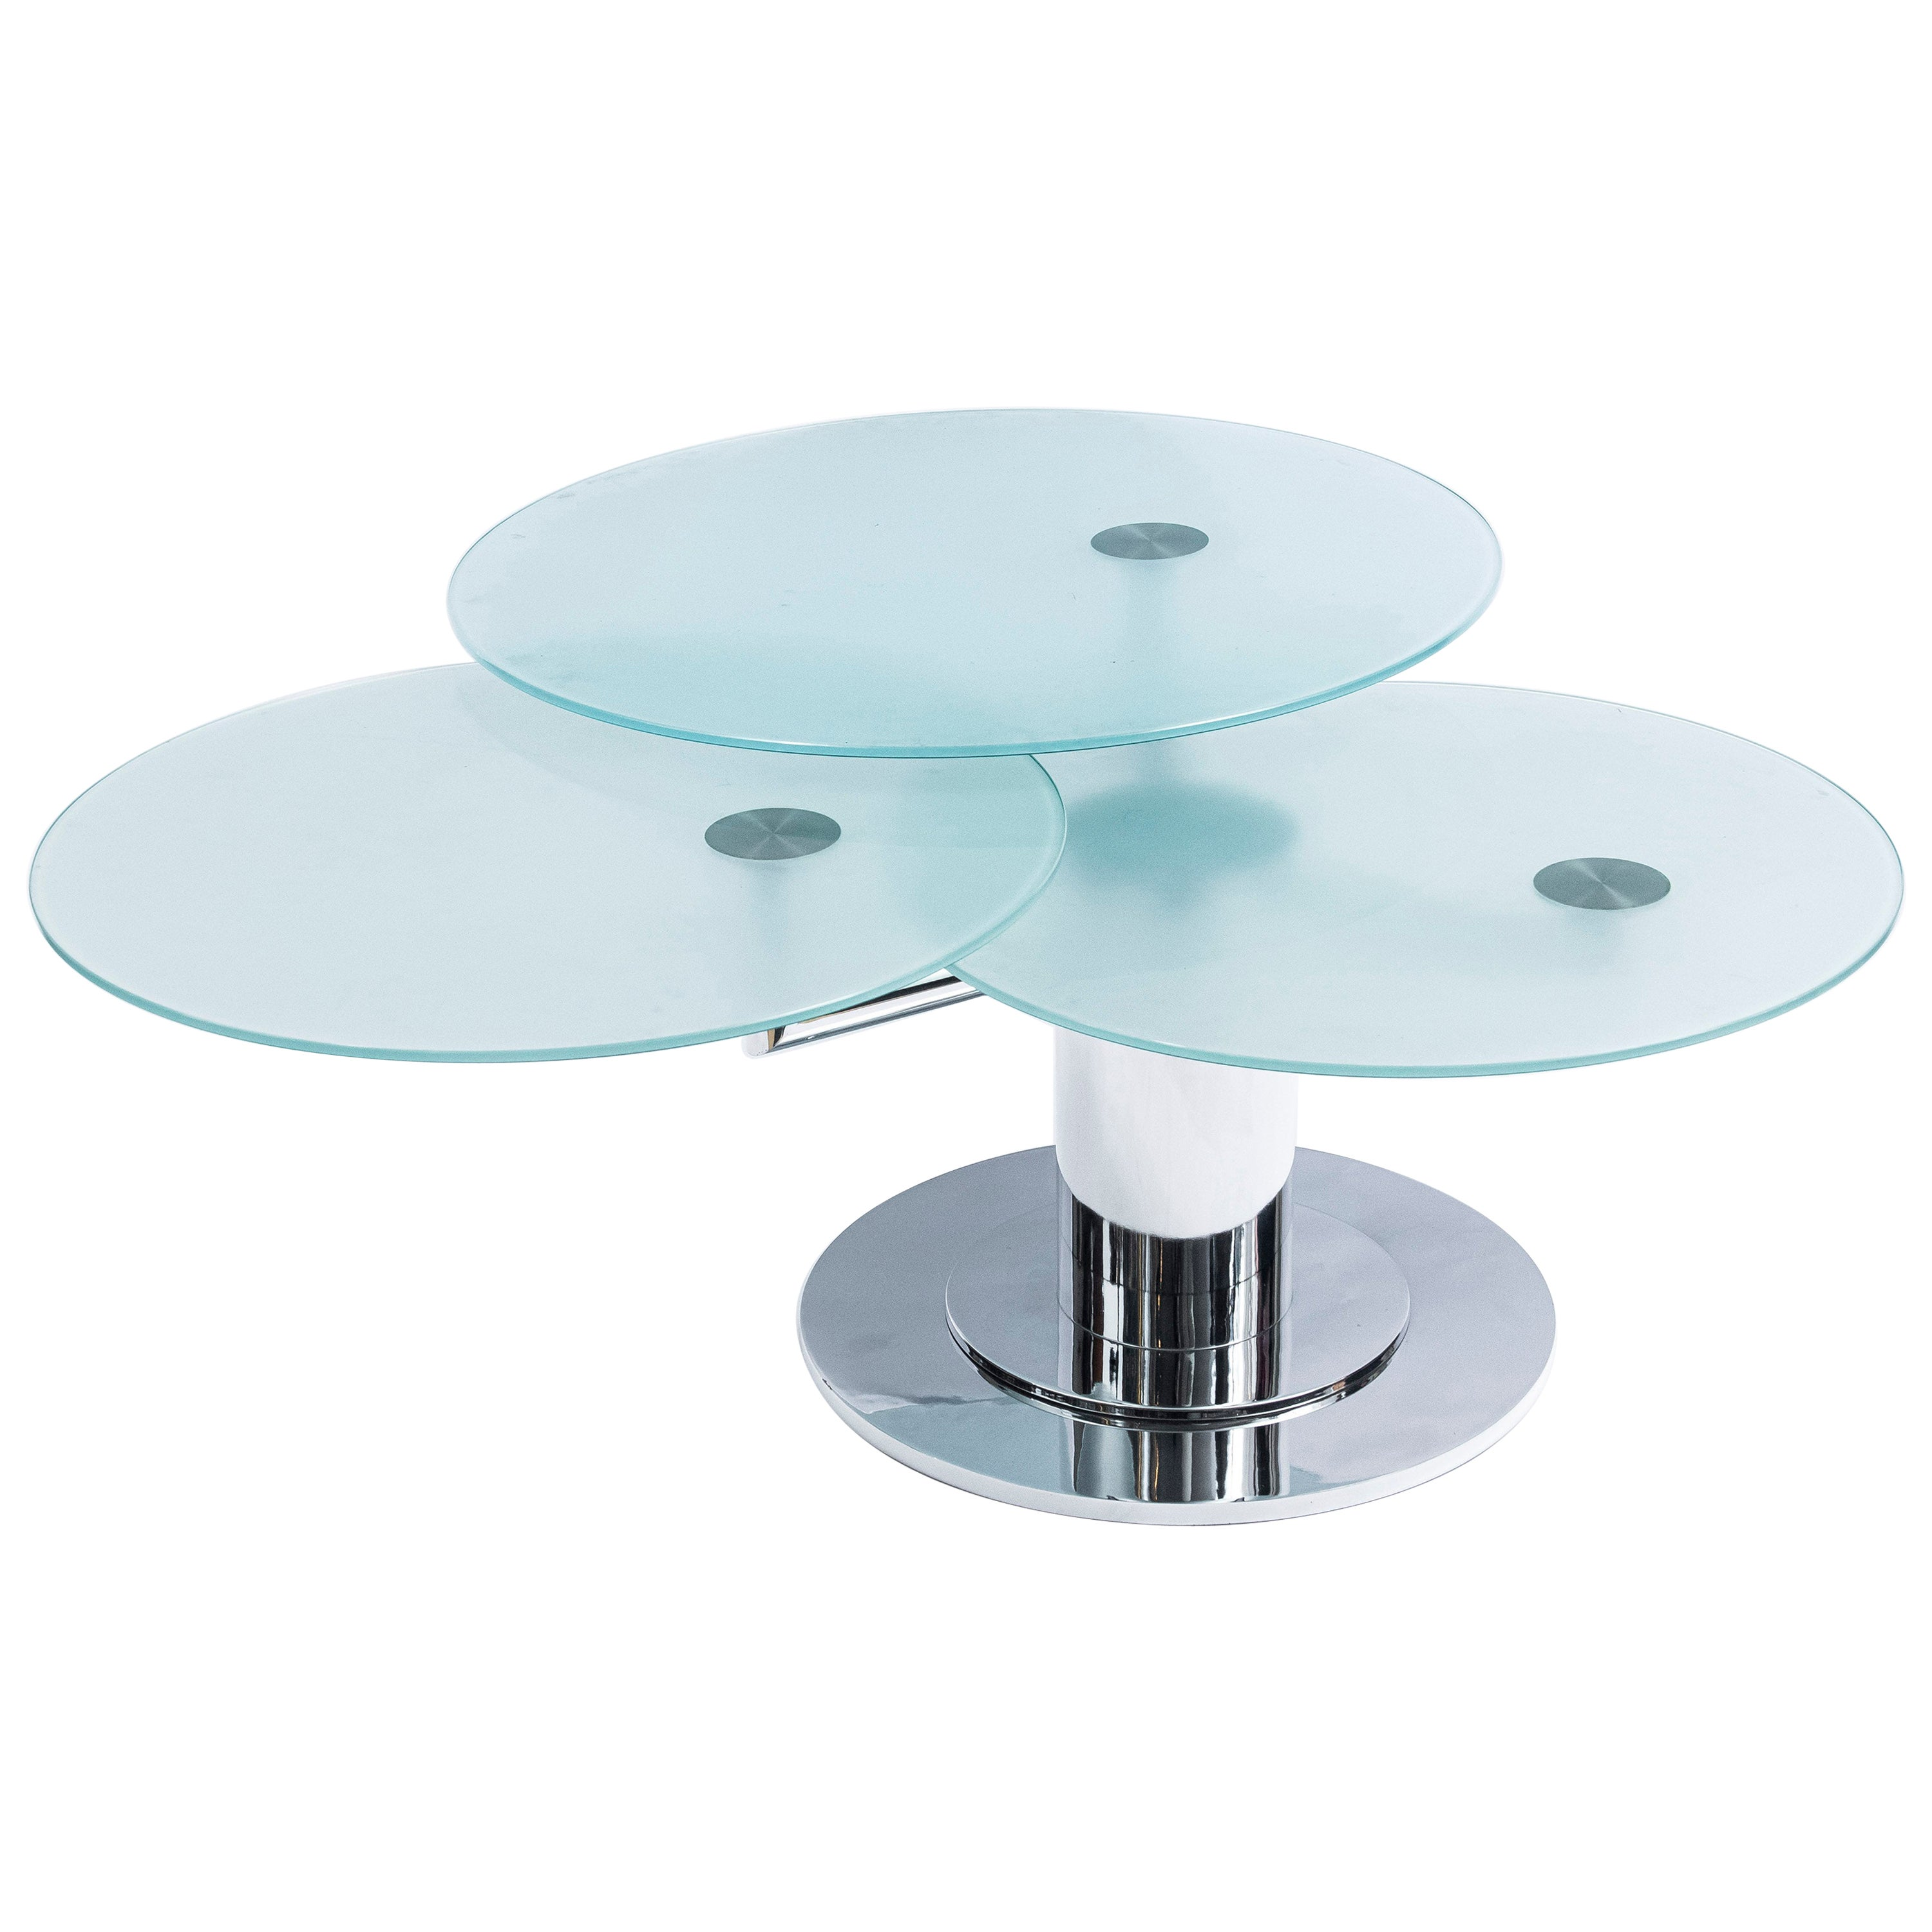 Round Glass and Chrome Metal Adjustable Coffee Table, Italy, circa 1980